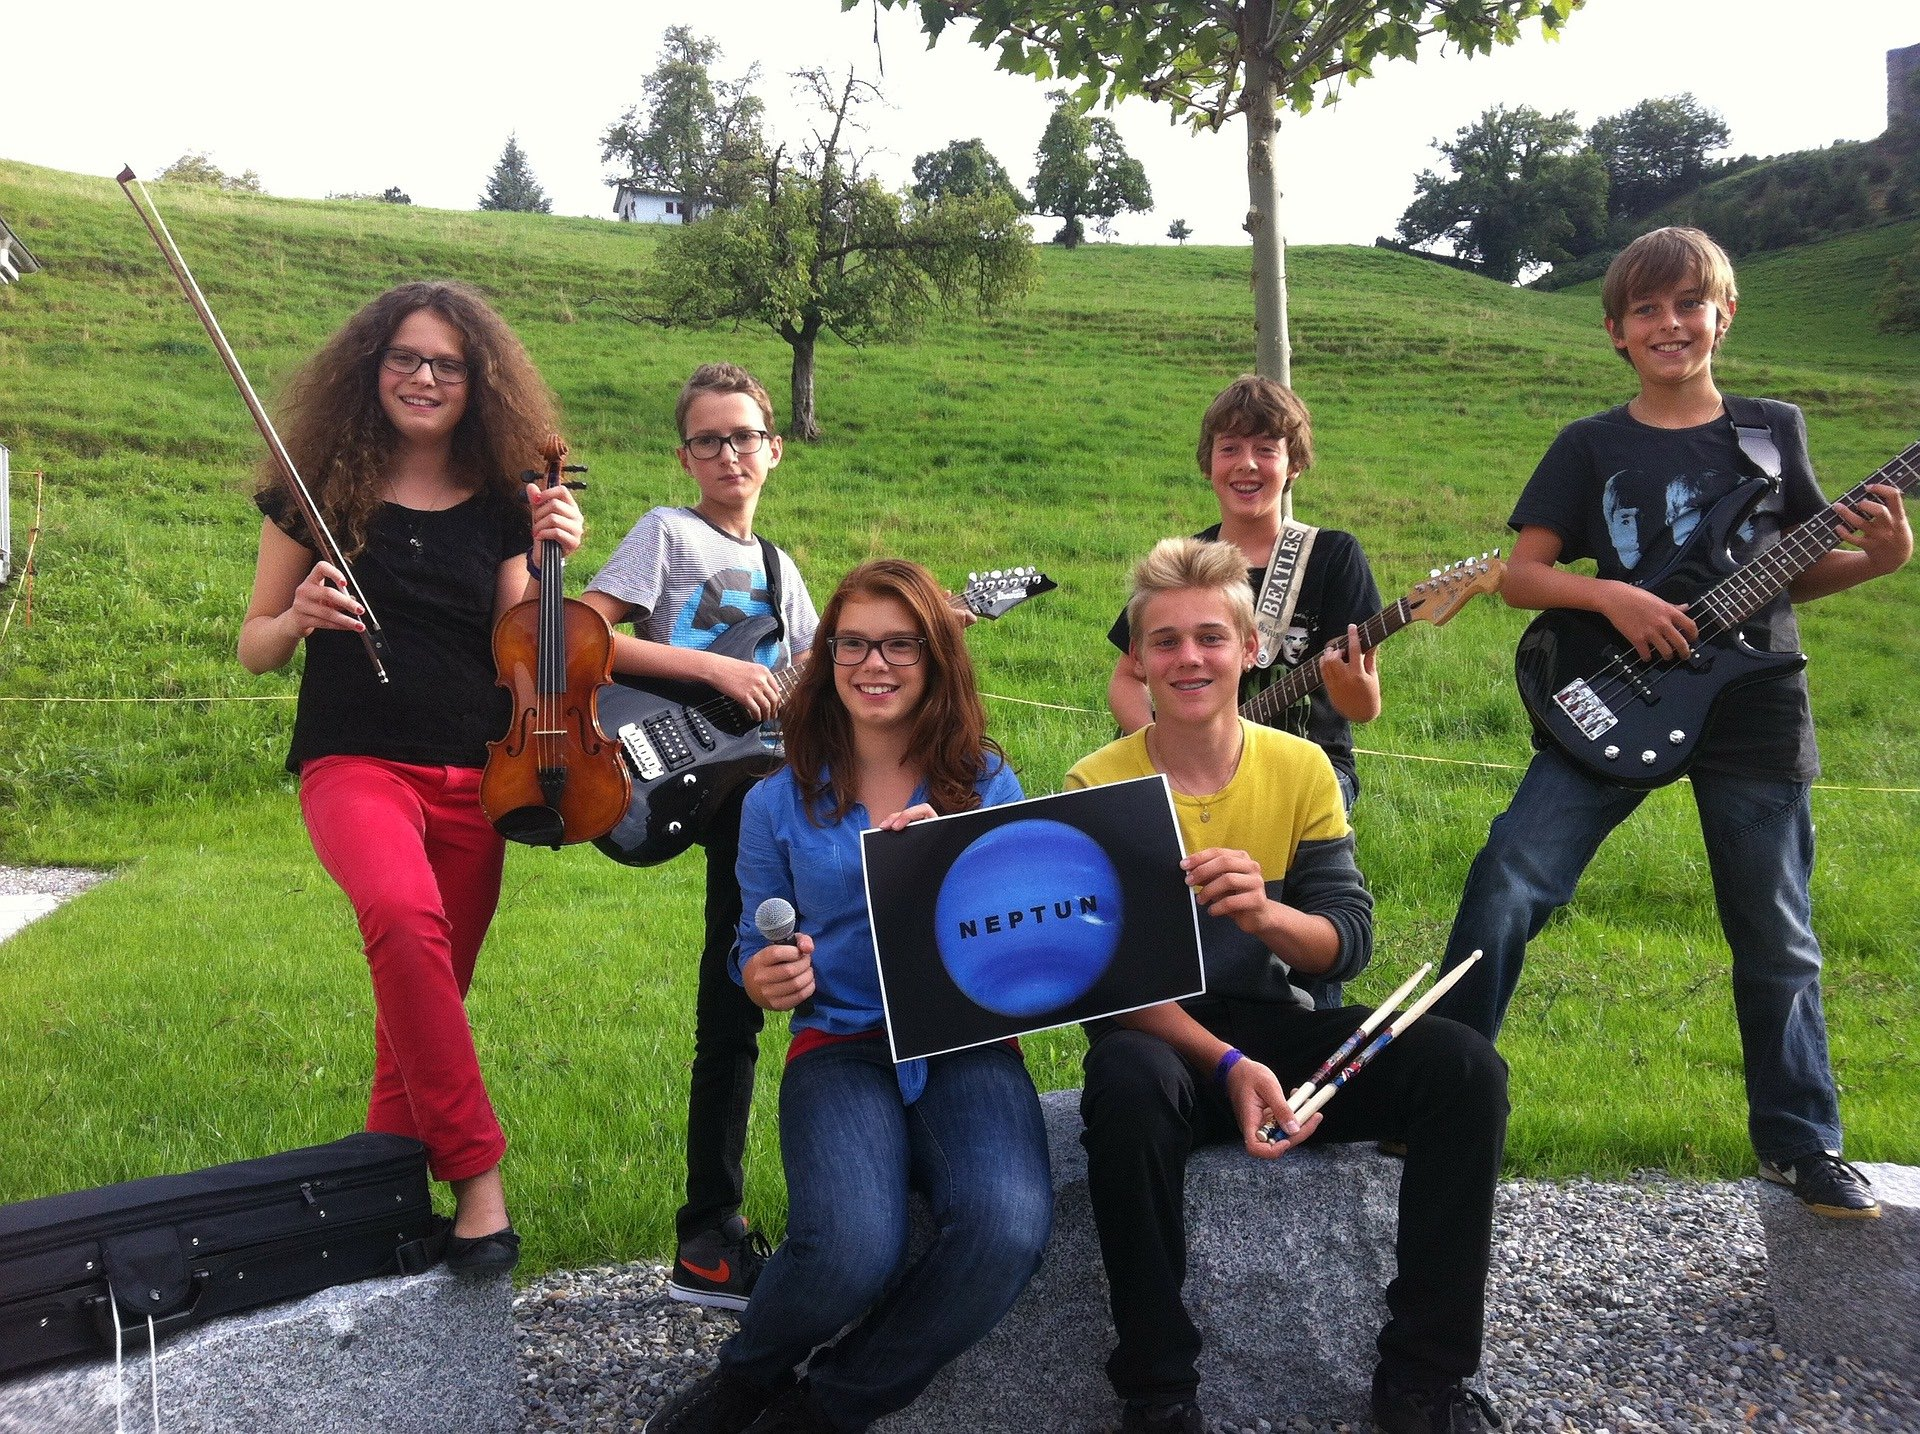 music-students-246844_1920_musikschule